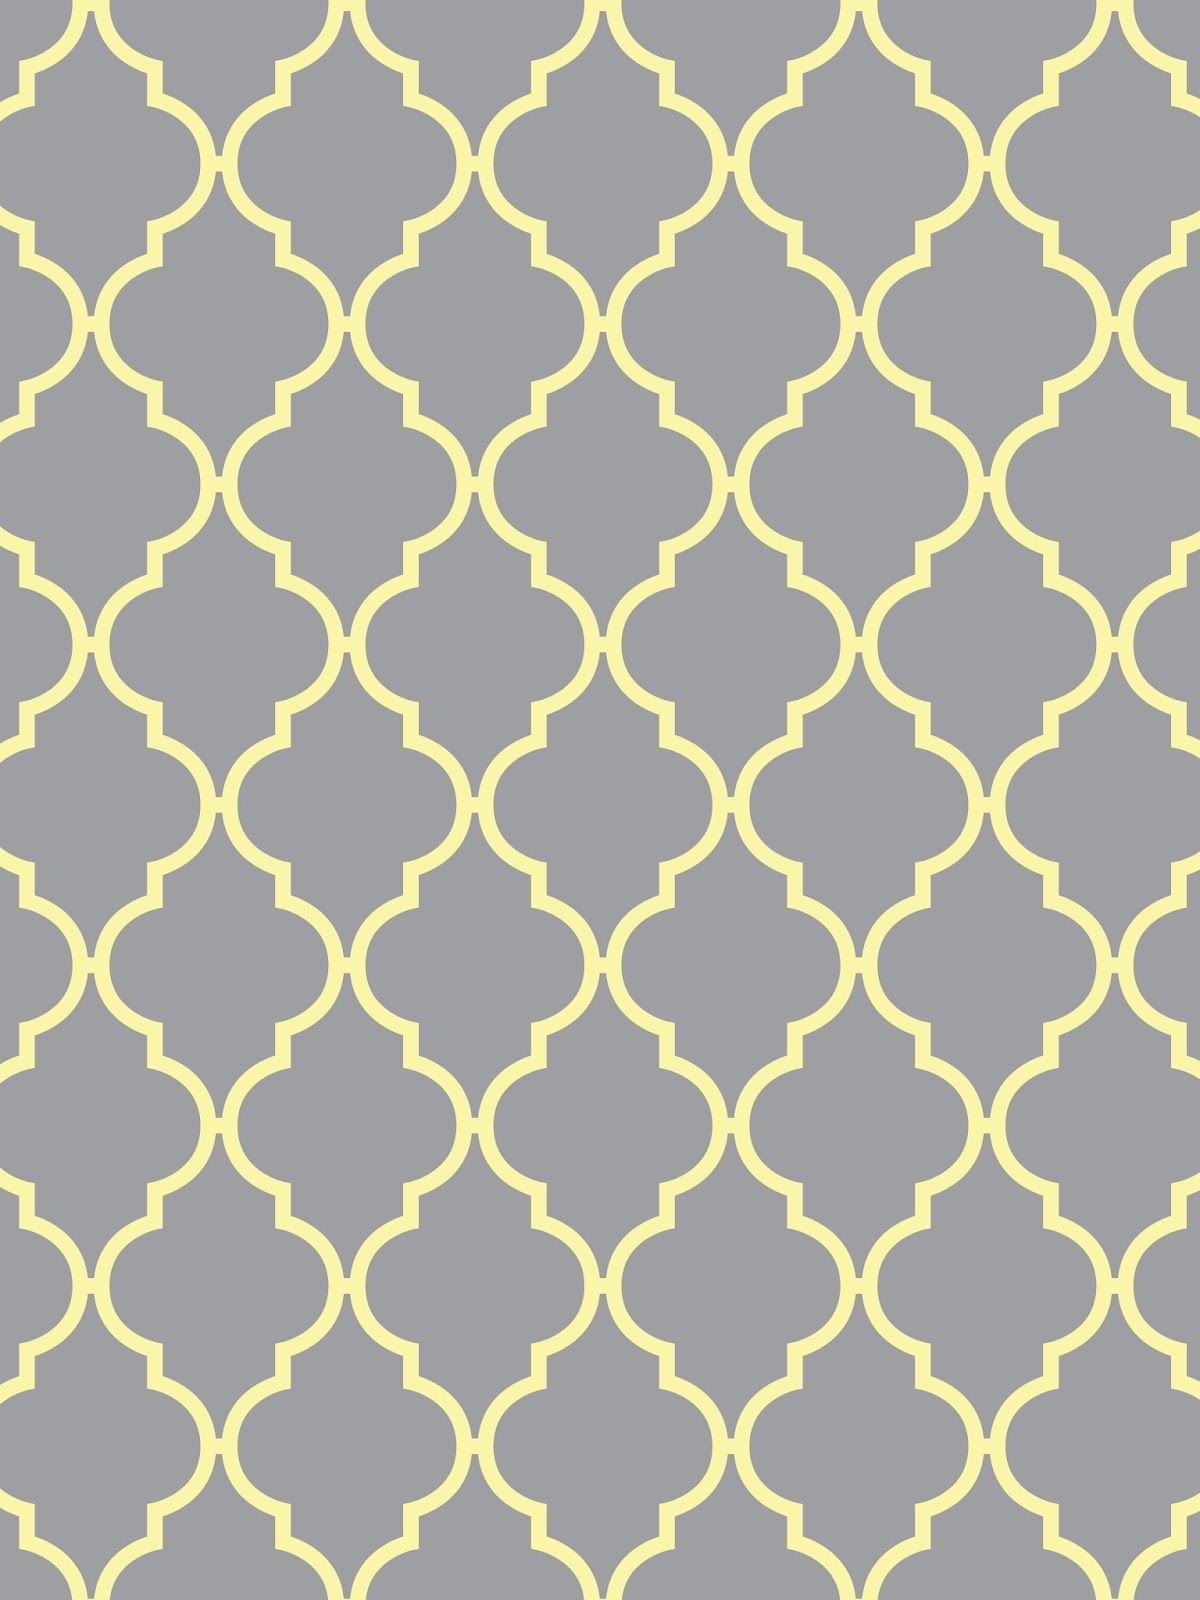 Quatrefoil Wallpaper For IPhone U0026 IPad {Light Gray With Yellow, Aqua, Pink,  Or White} Each Color Is Available For IPhone And IPad.